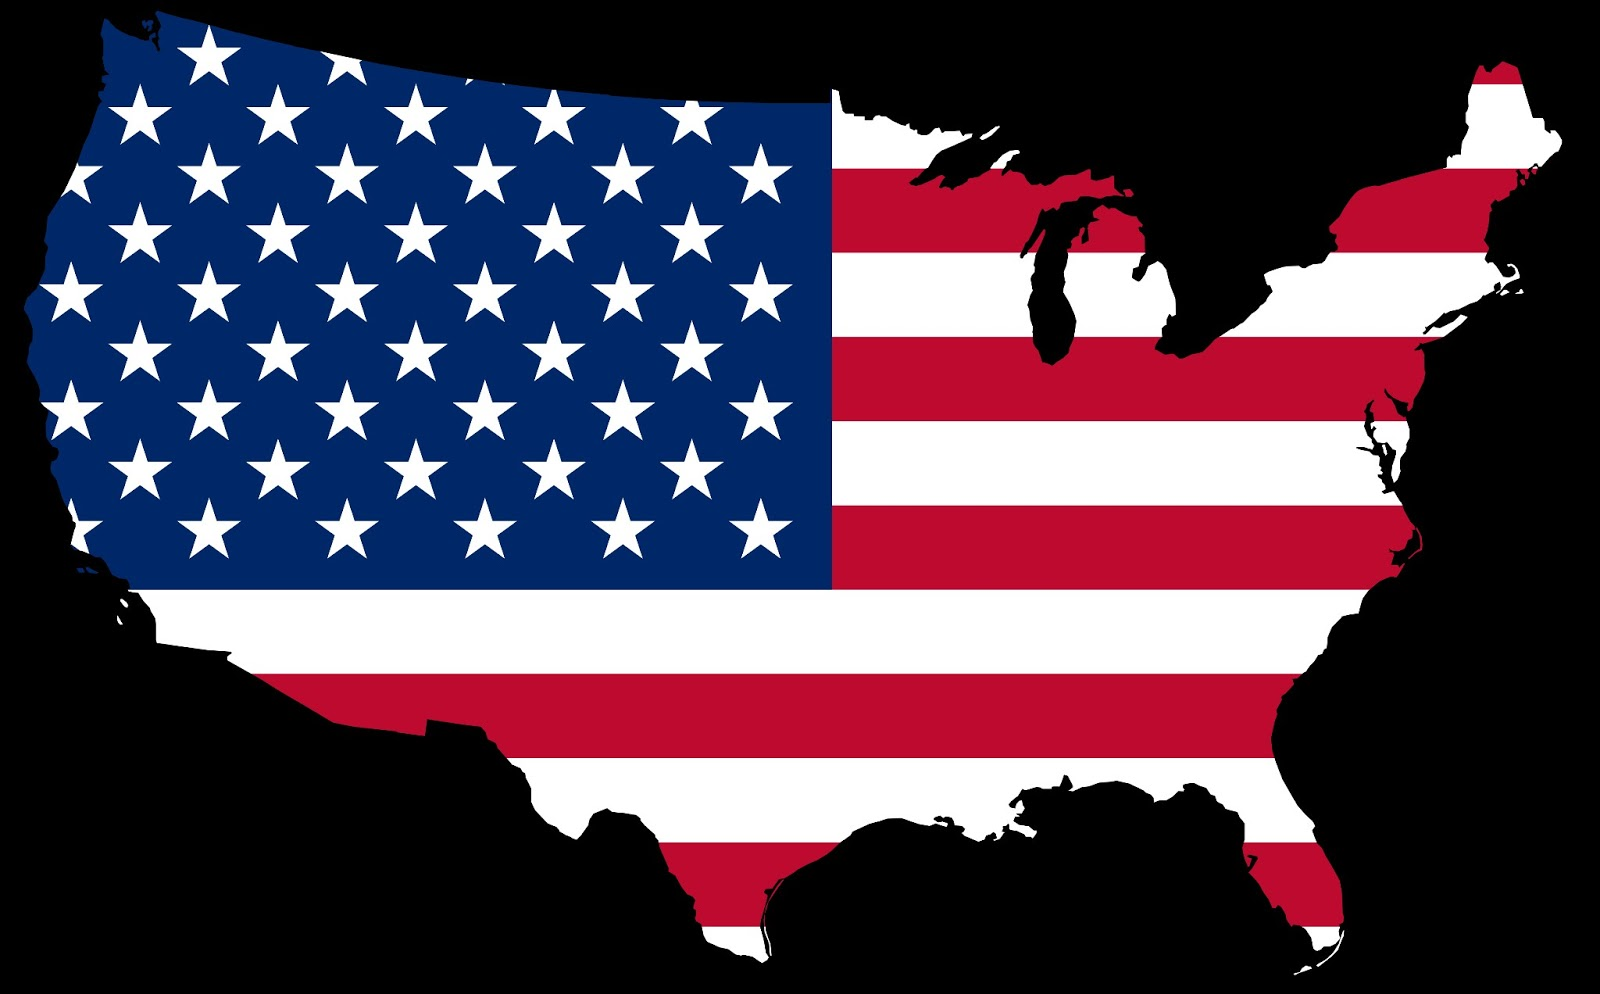 flag hd wallpapers download Fine HD Wallpapers   Download 1600x994